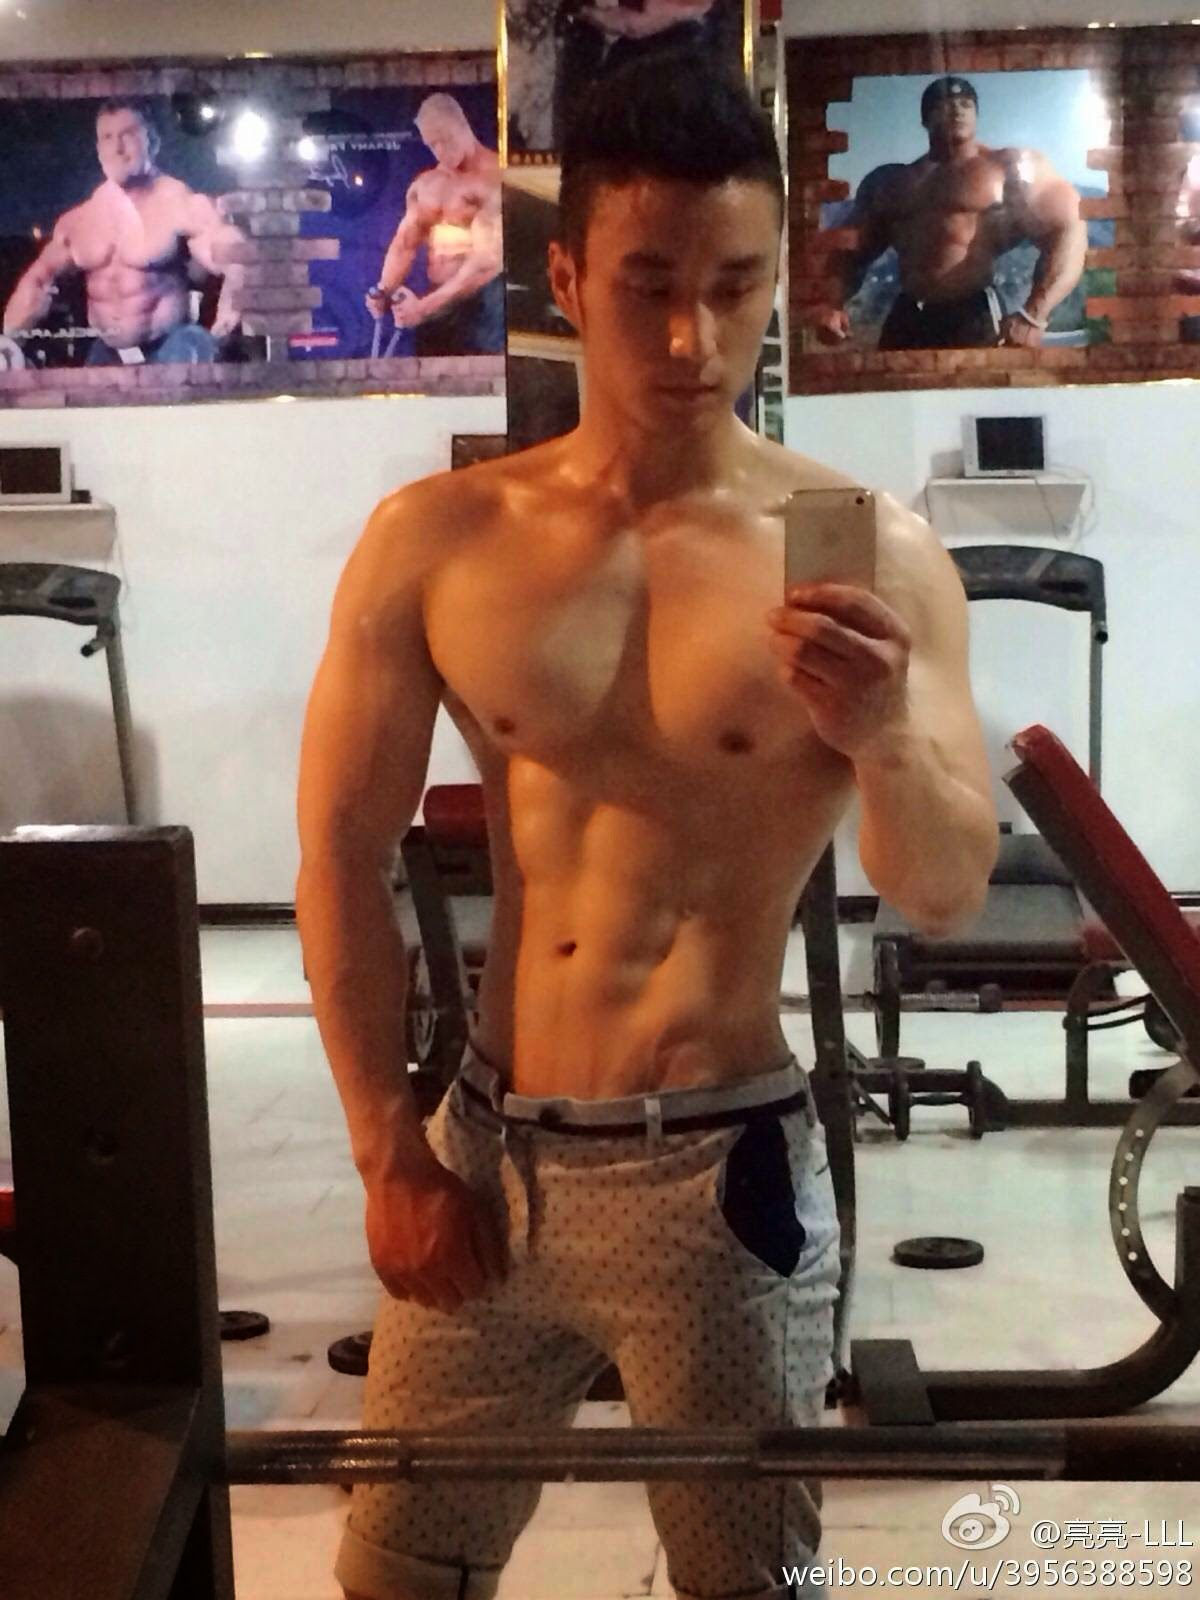 http://gayasiancollection.com/hot-asian-hunks-chinese-gym-hunk/